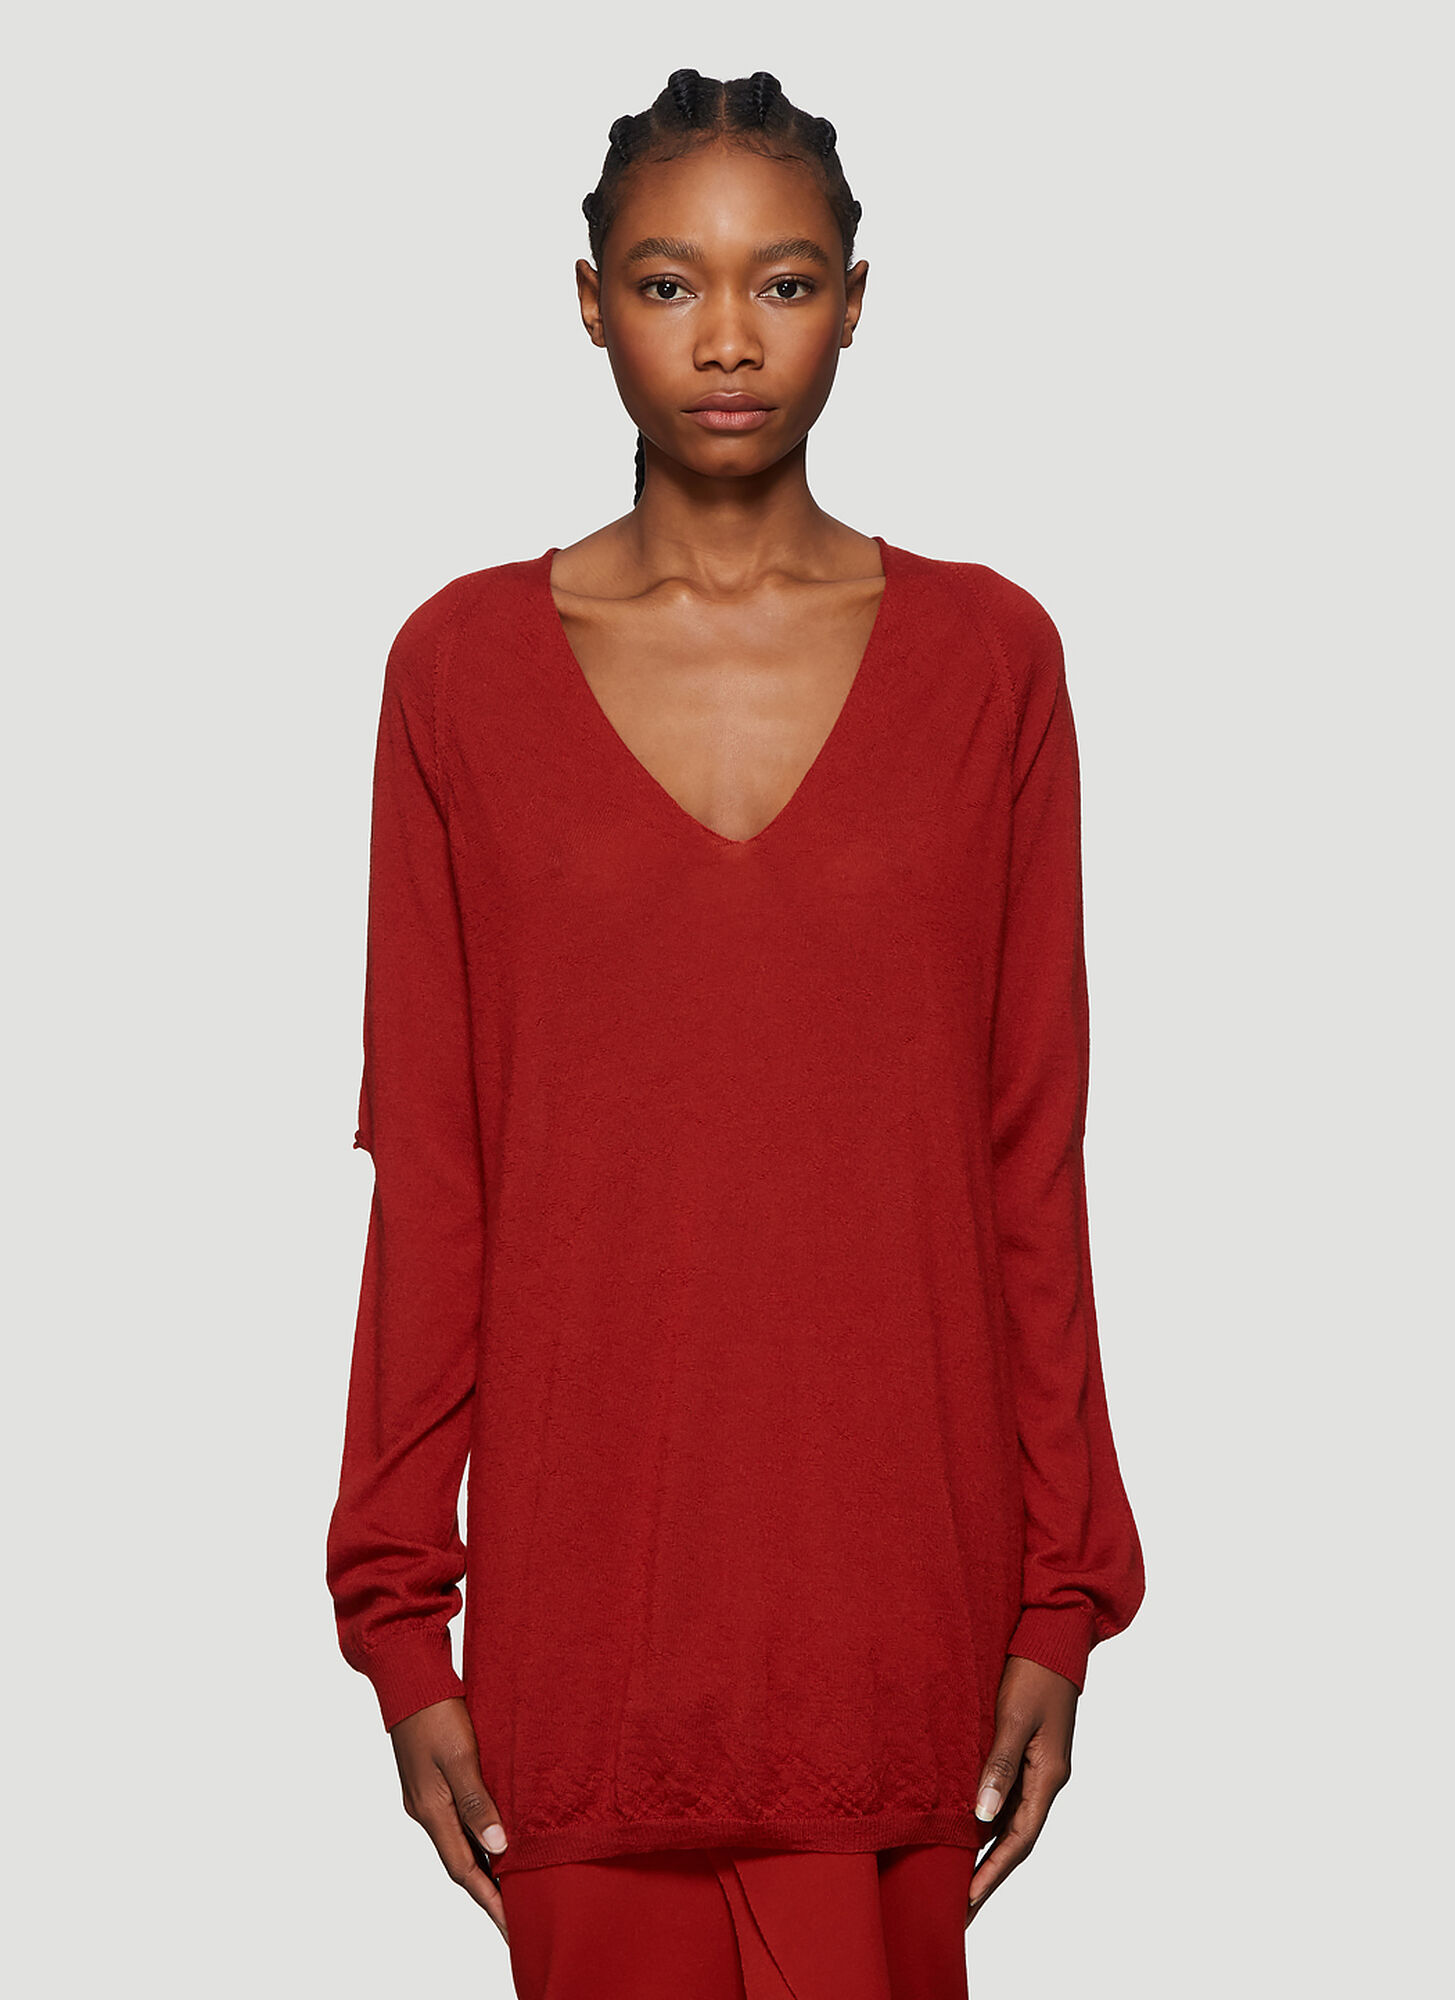 Rick Owens Zionic V-Neck Sweater in Red